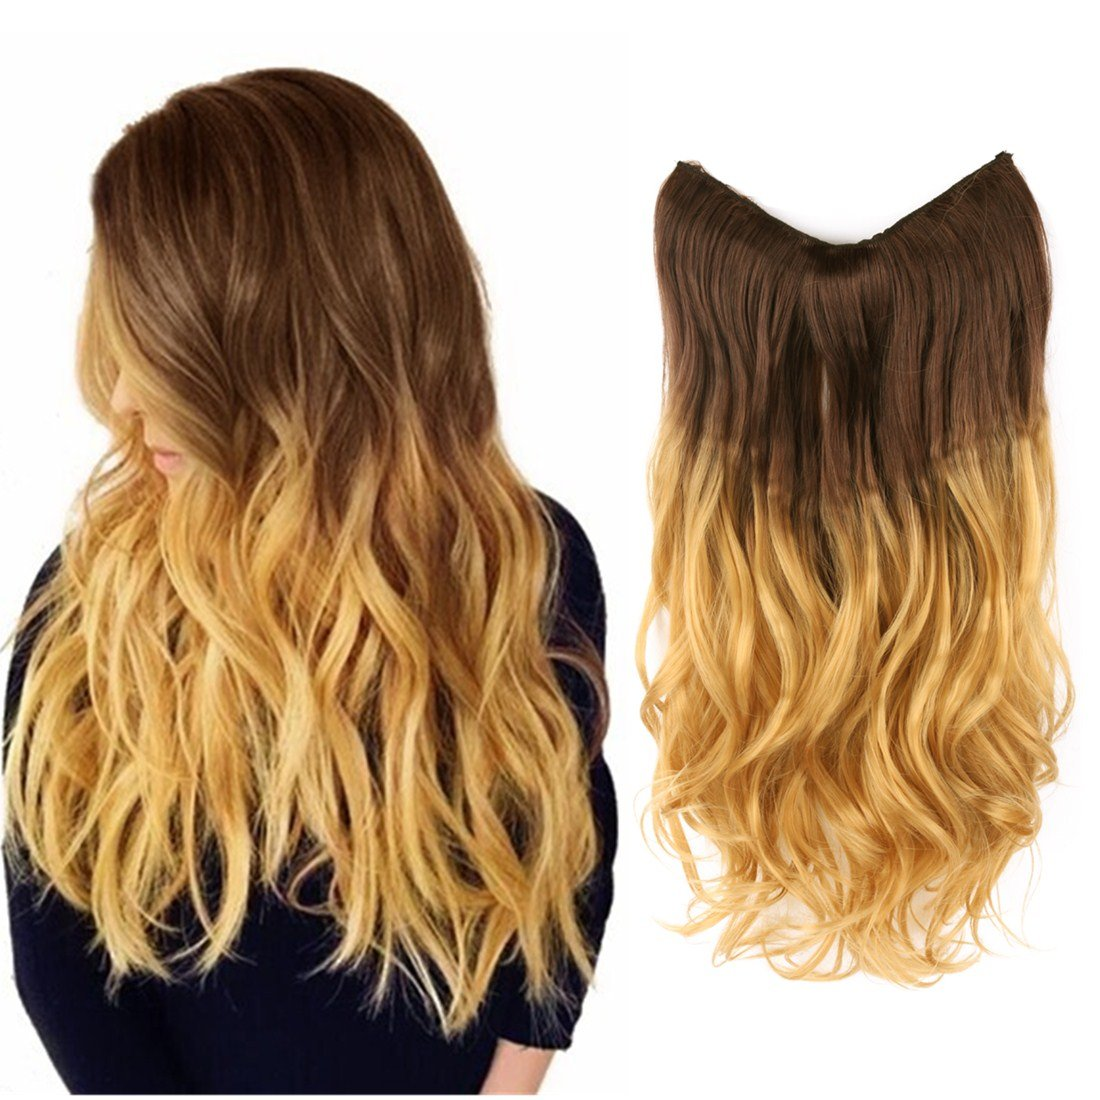 Amazon Creamily Hair Extension 14 Wavy Curly Brown To